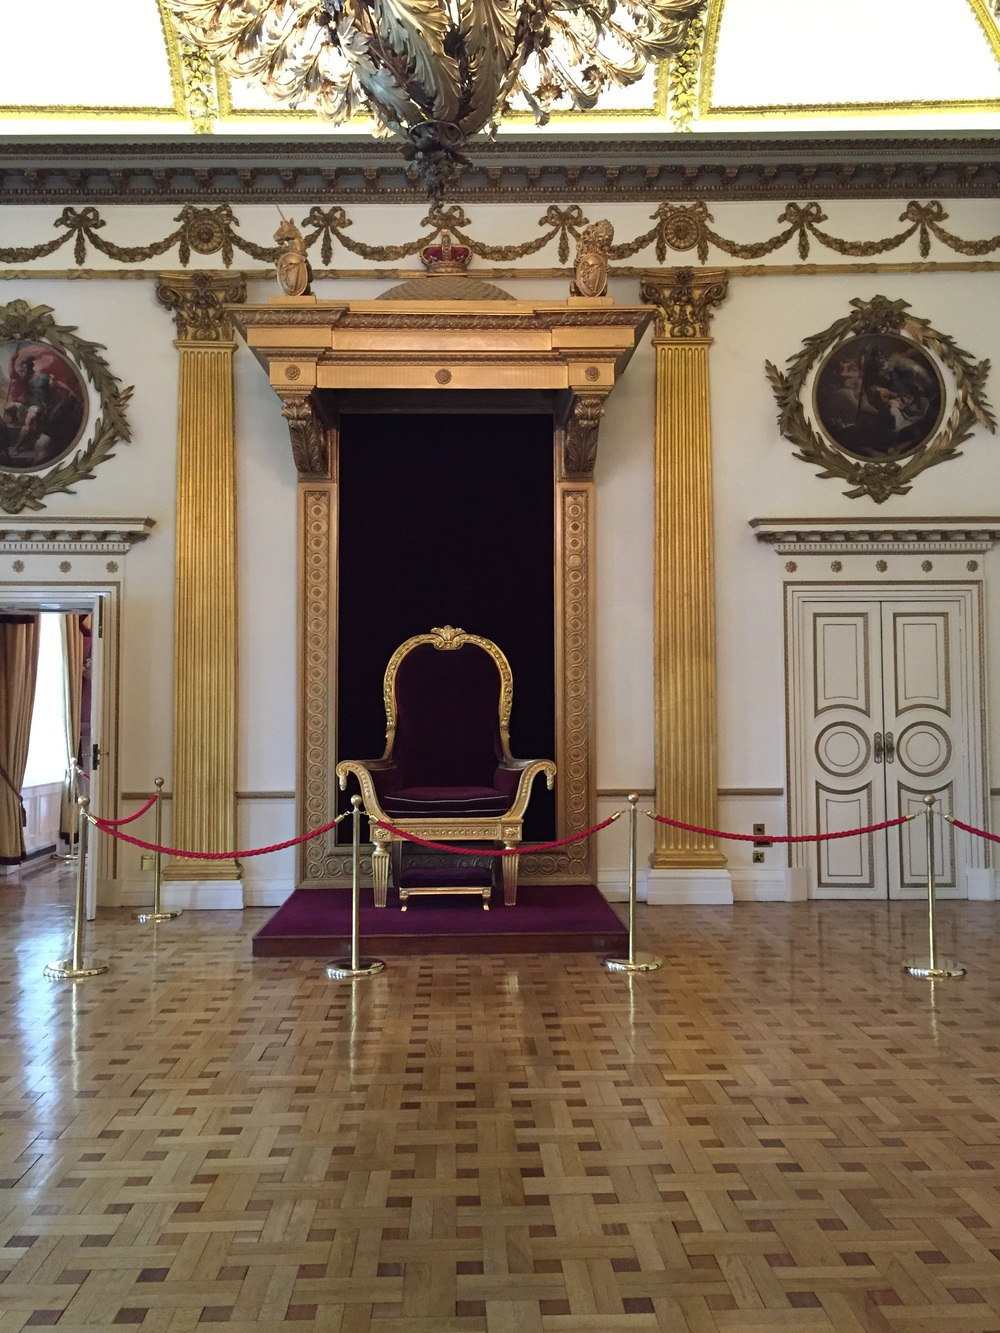 The throne room which had been completely redecorated when Queen Victoria came to visit in the 1800s. It has since been refinished to look like it did for her arrival.